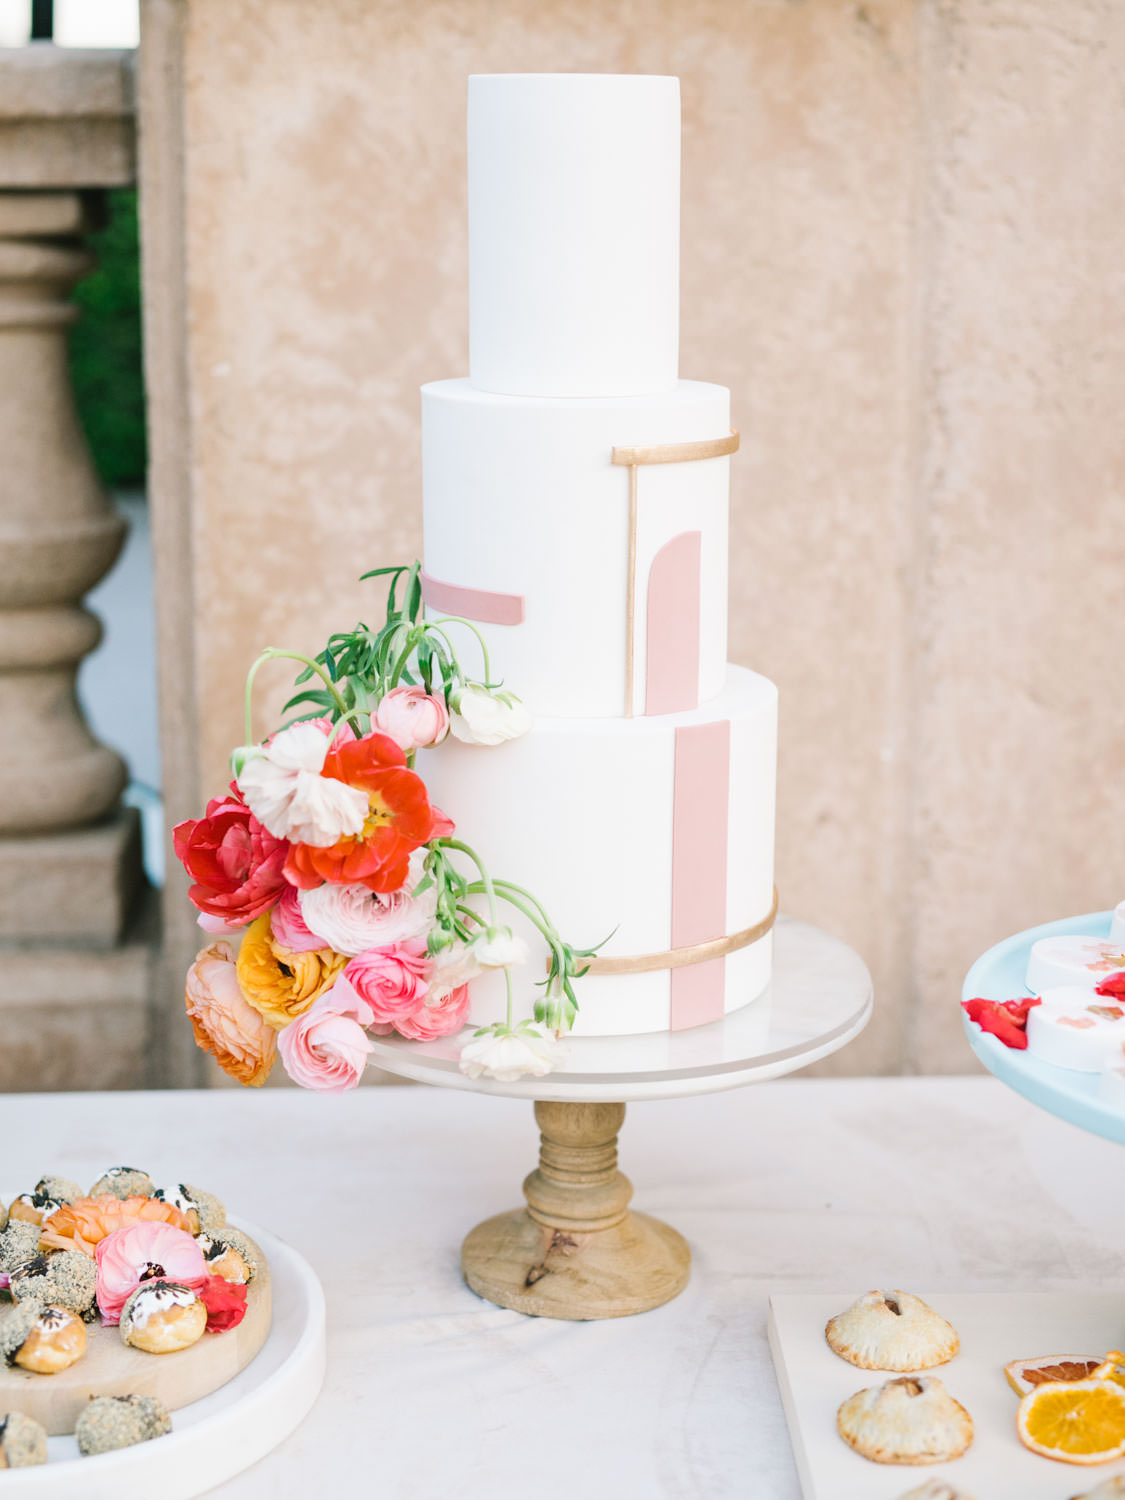 Dessert display with bone velvet linen. Three tier white cake with pink and gold lines for a geometric cake. Cut fruit and flowers styled with desserts.